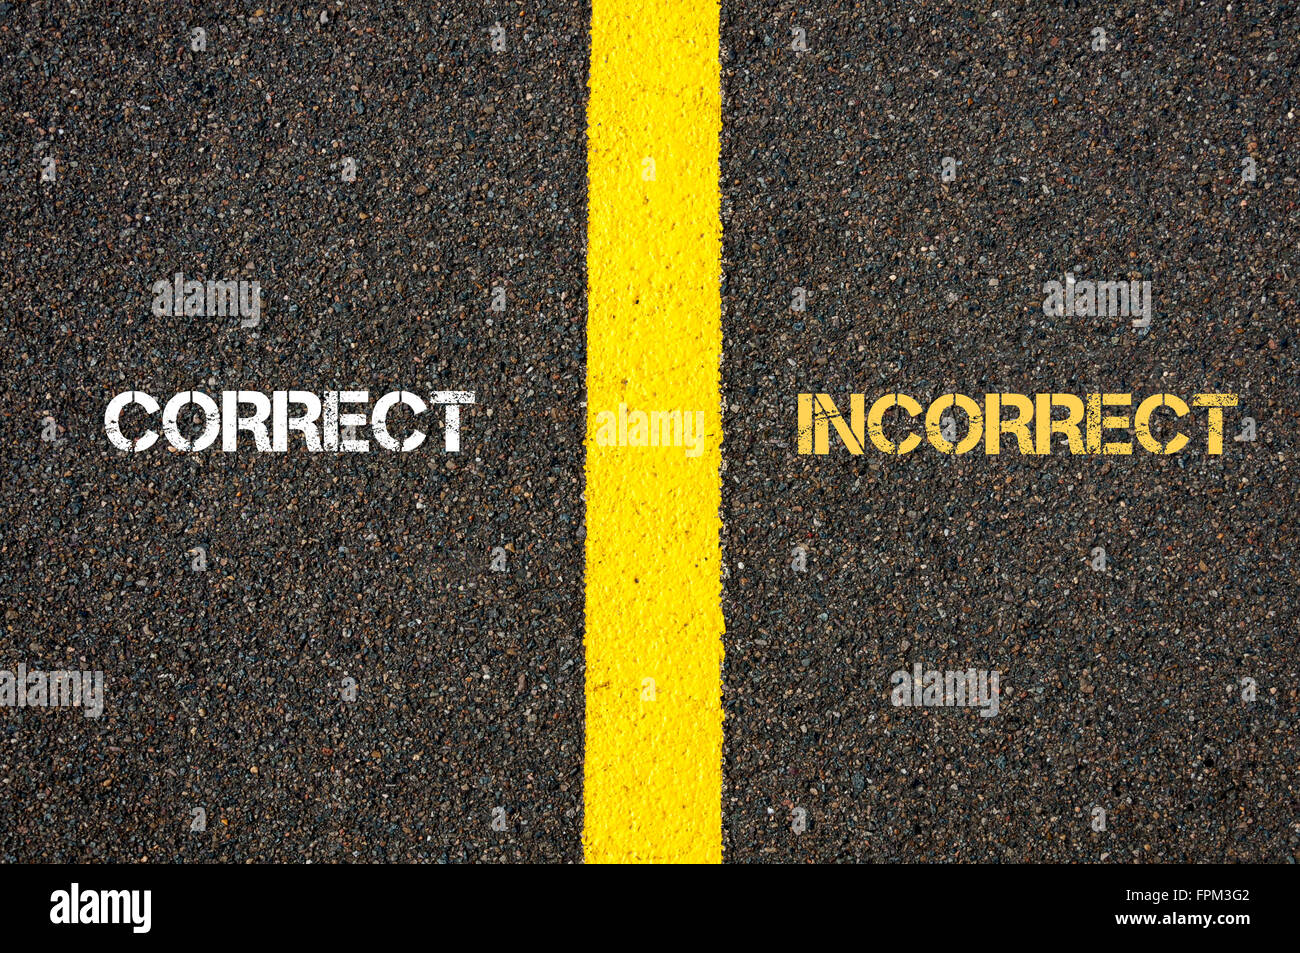 Antonym concept of CORRECT versus INCORRECT written over tarmac, road marking yellow paint separating line between - Stock Image